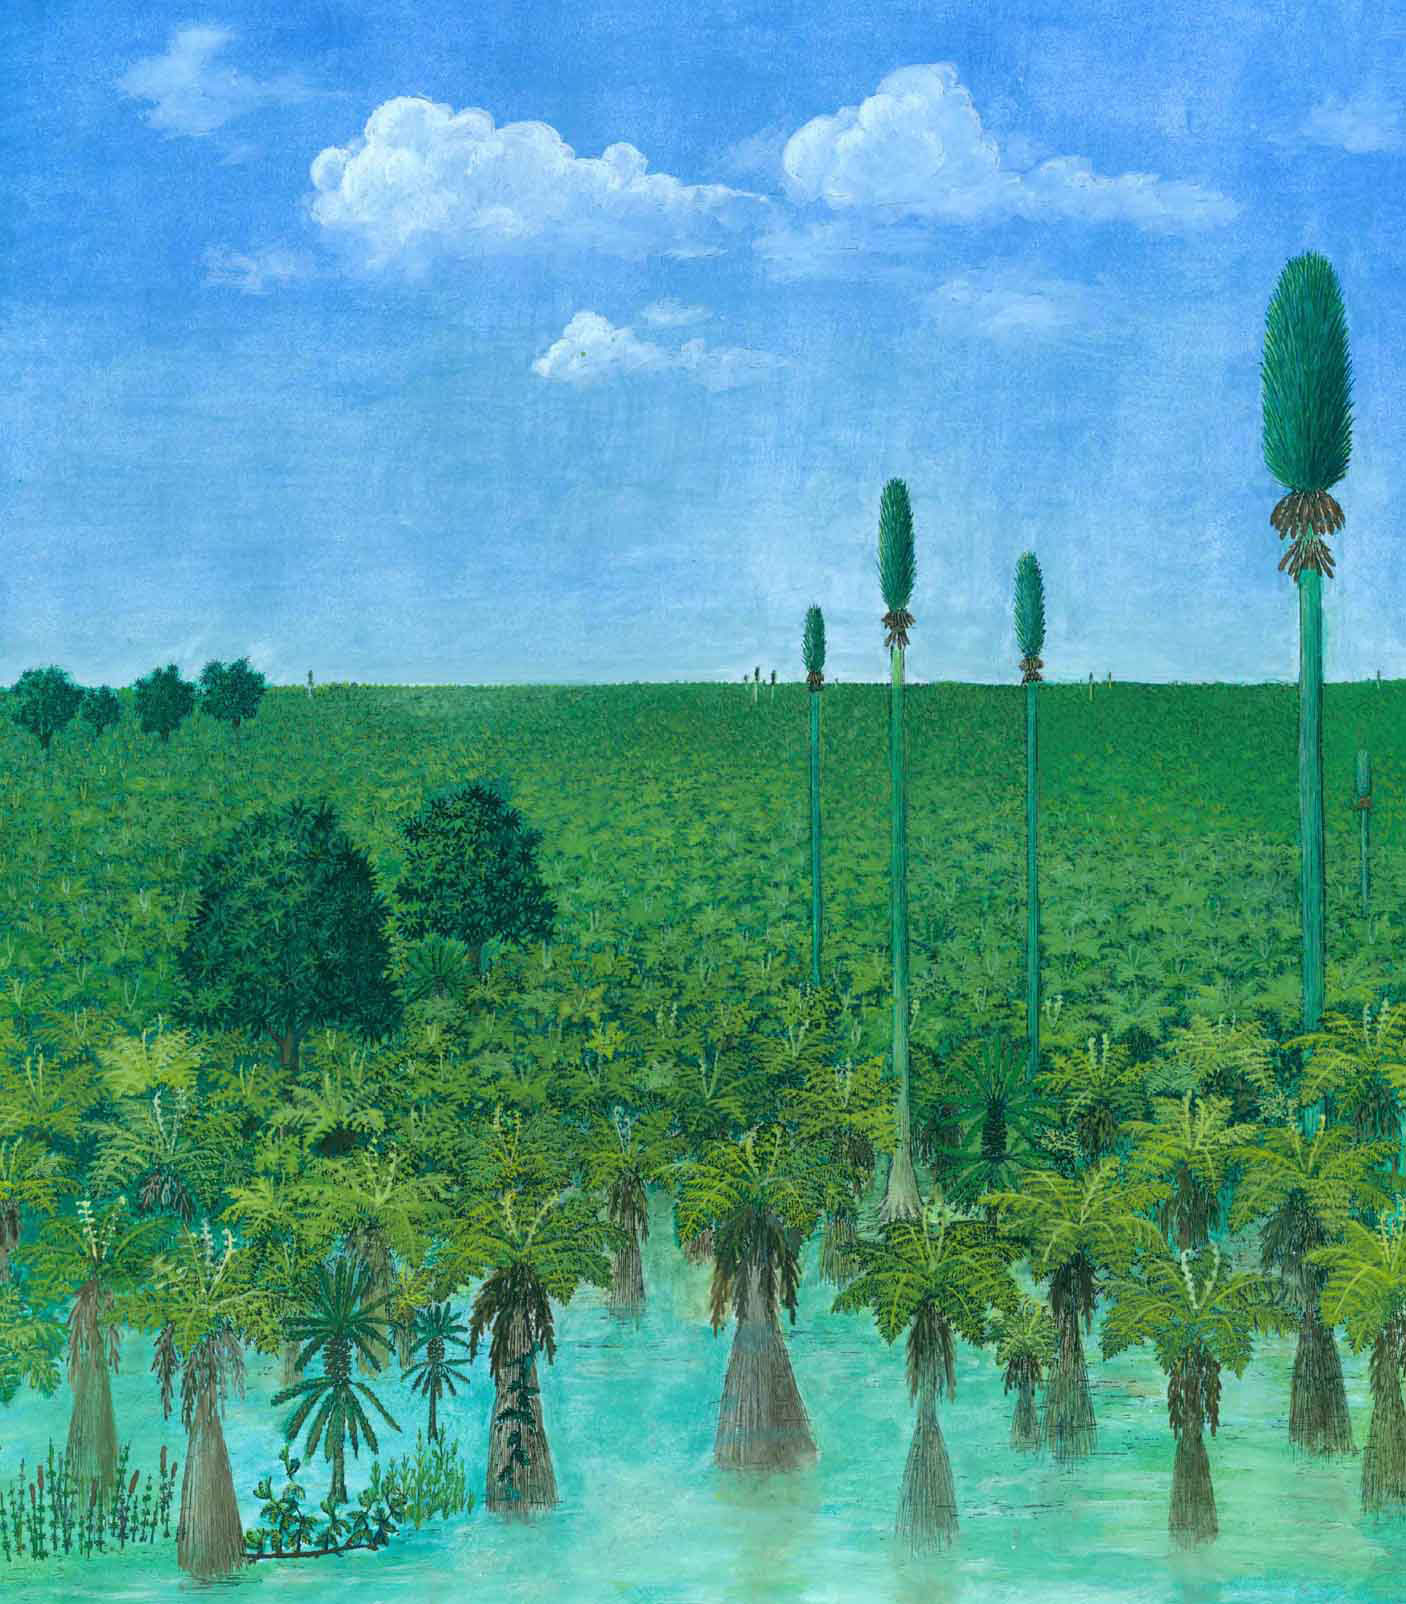 A reconstruction of the 300-million-year-old peat-forming forest at a site near Wuda, China